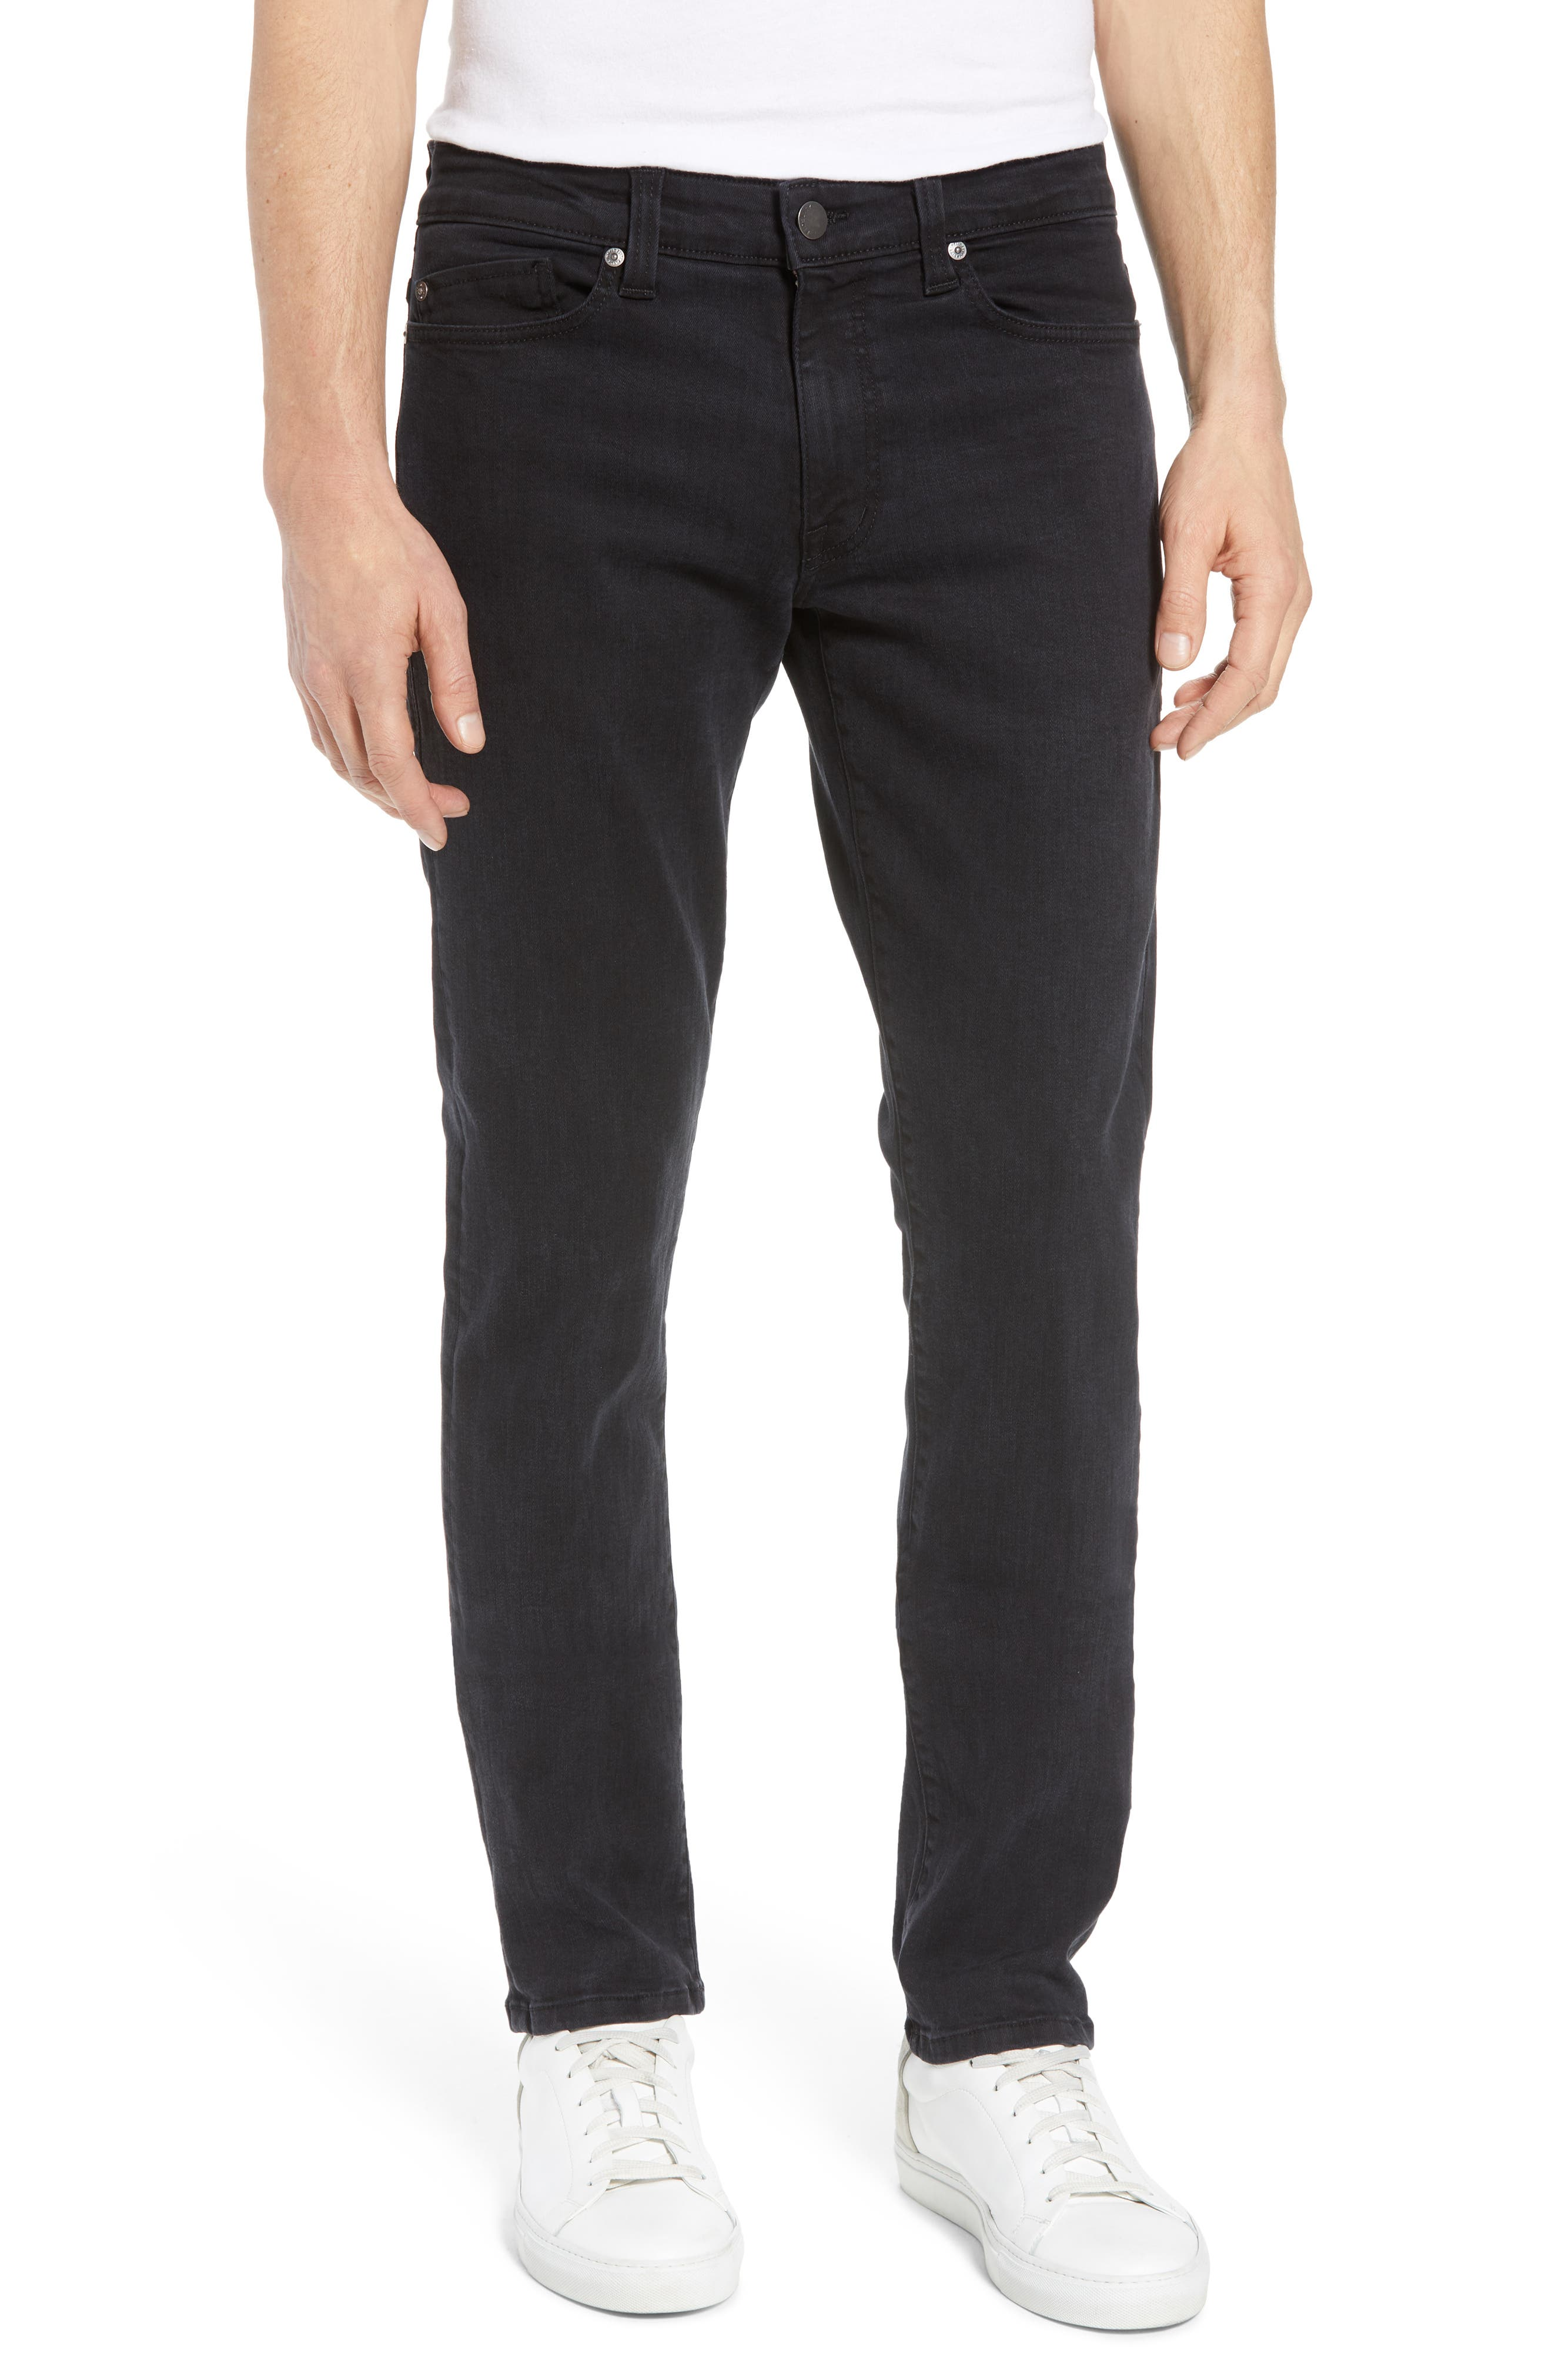 Torino Slim Fit Jeans,                         Main,                         color, Blackbird